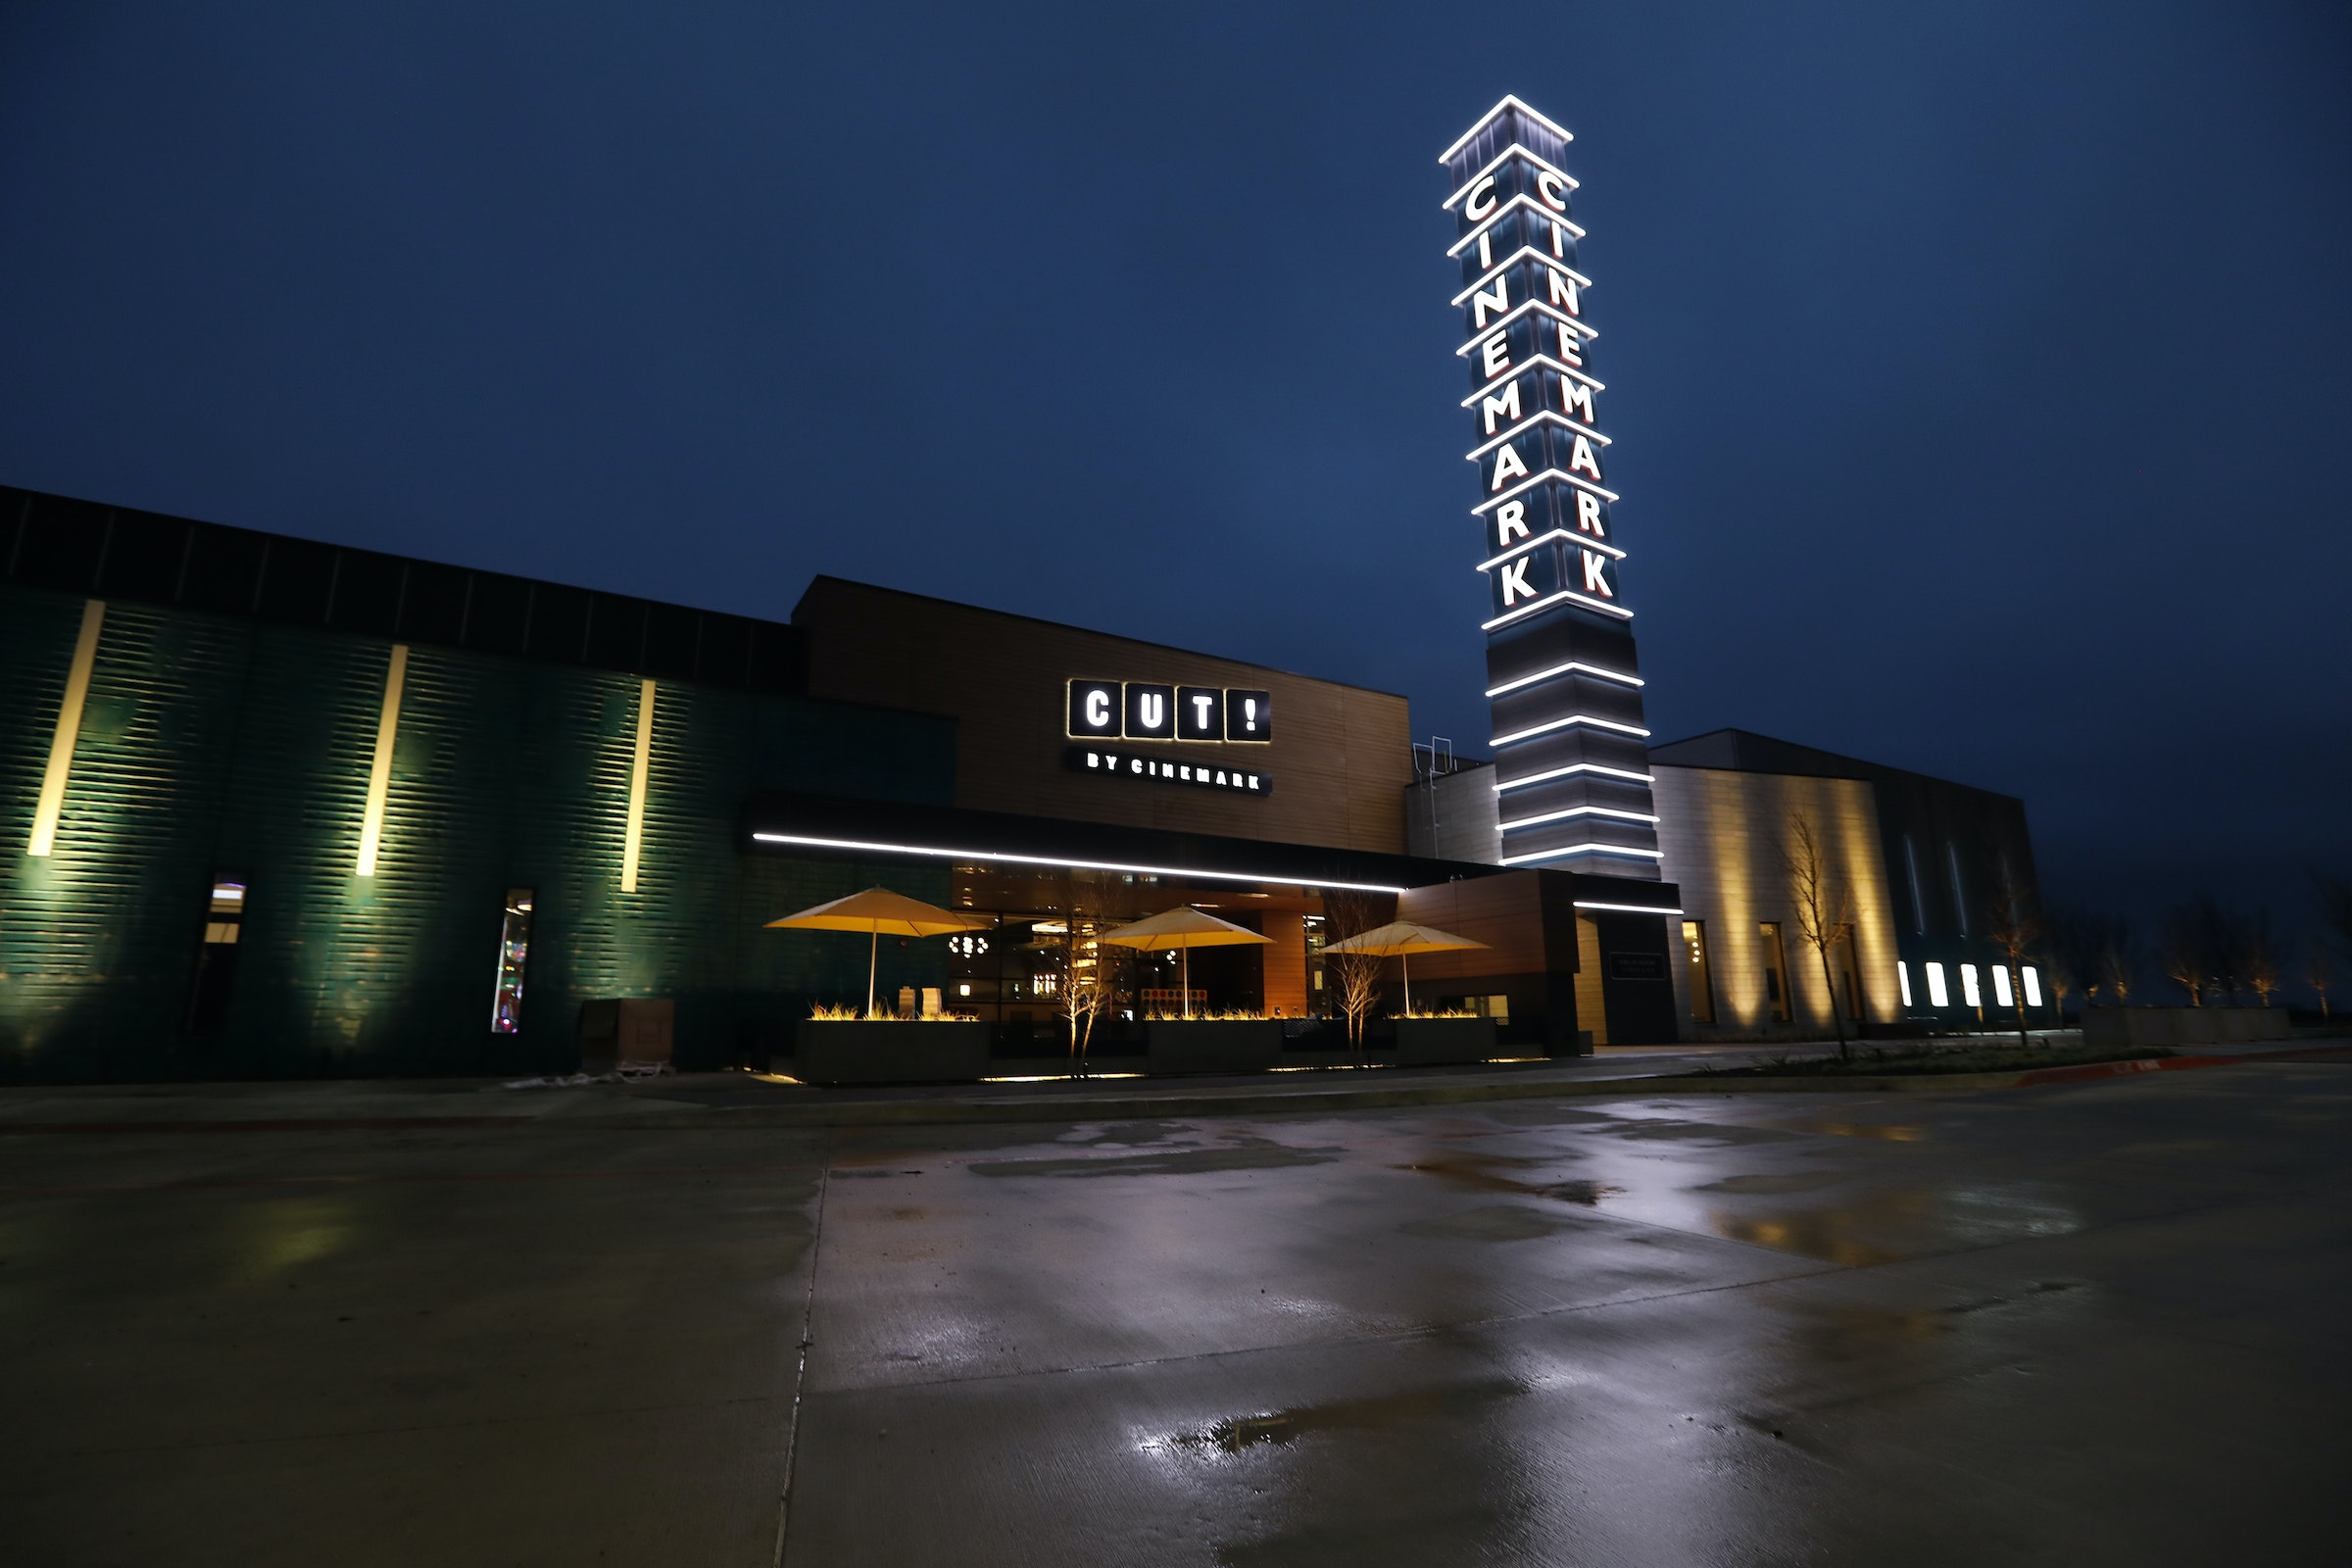 CUT! By Cinemark in Beyond Dallas